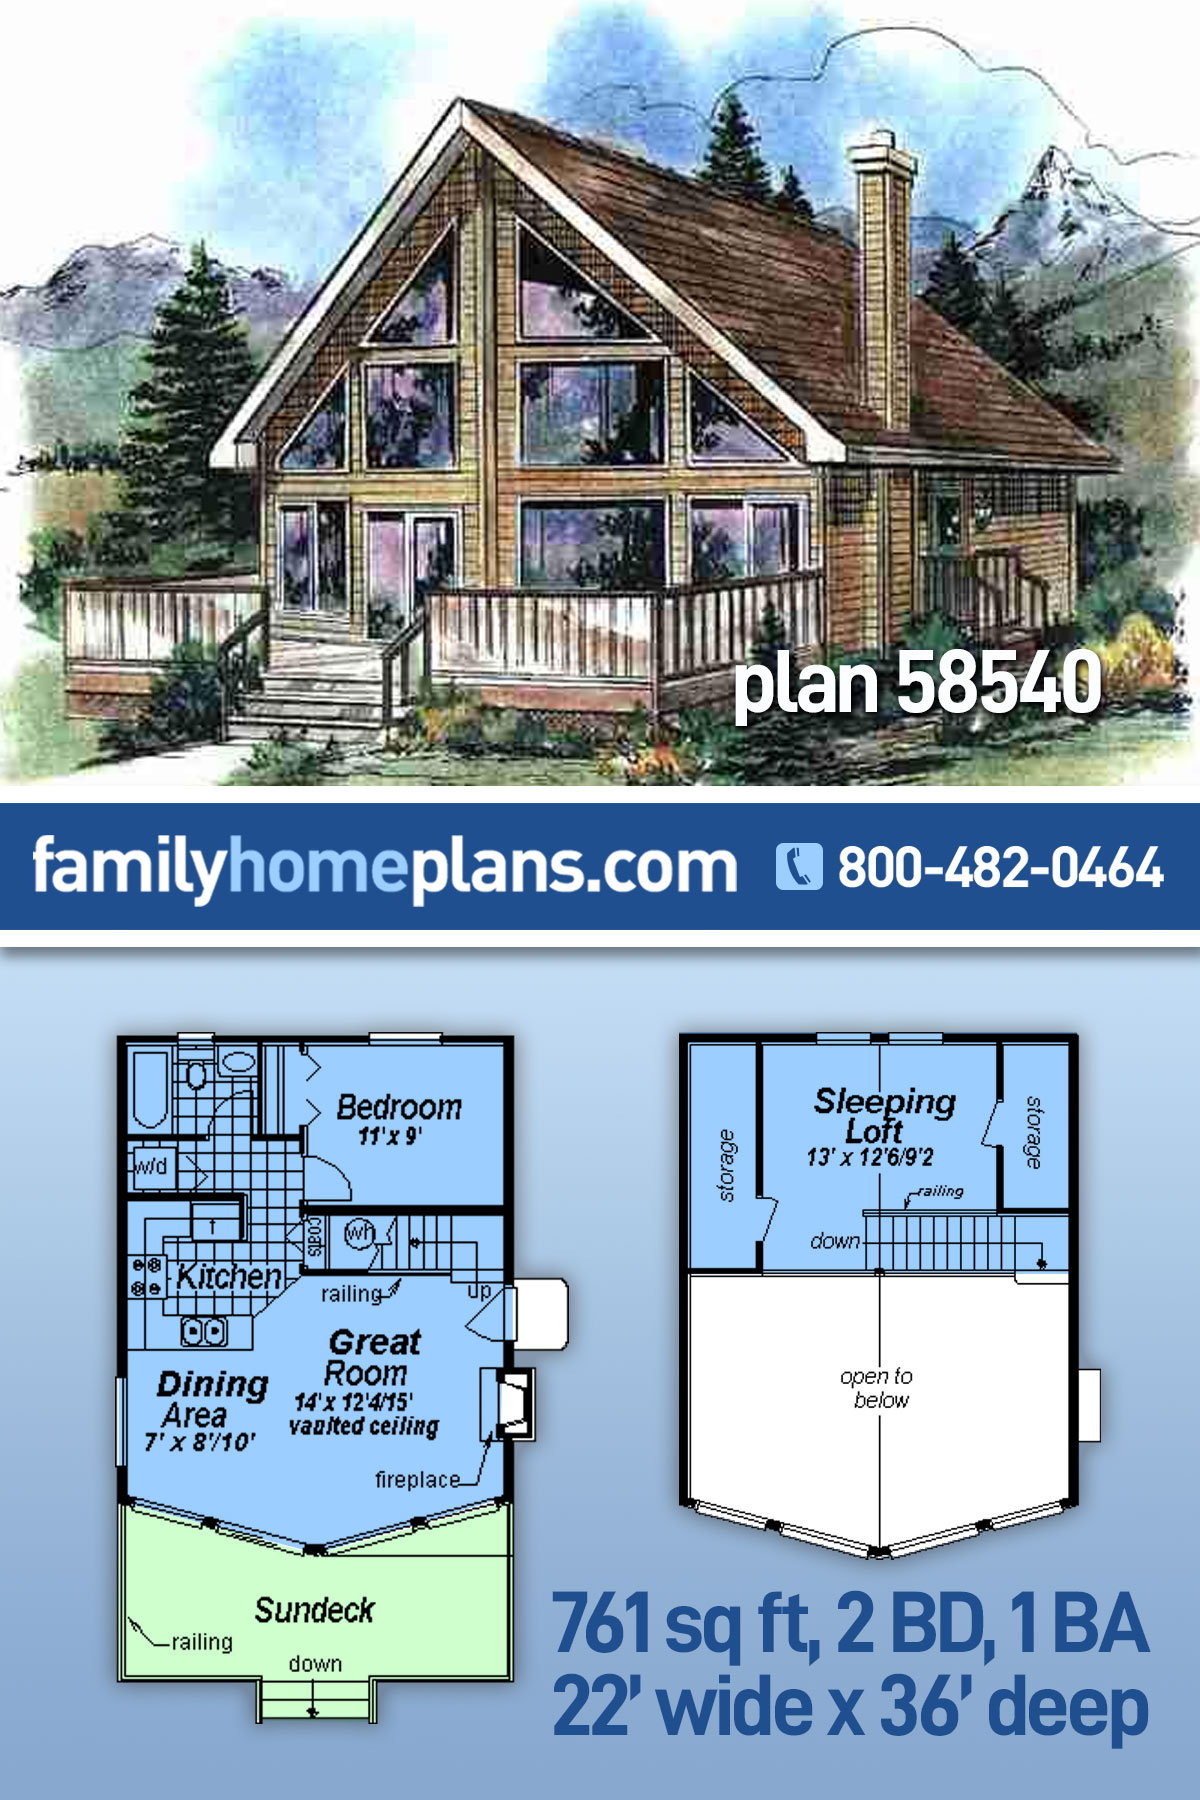 Contemporary House Plan 58540 with 2 Beds, 1 Baths